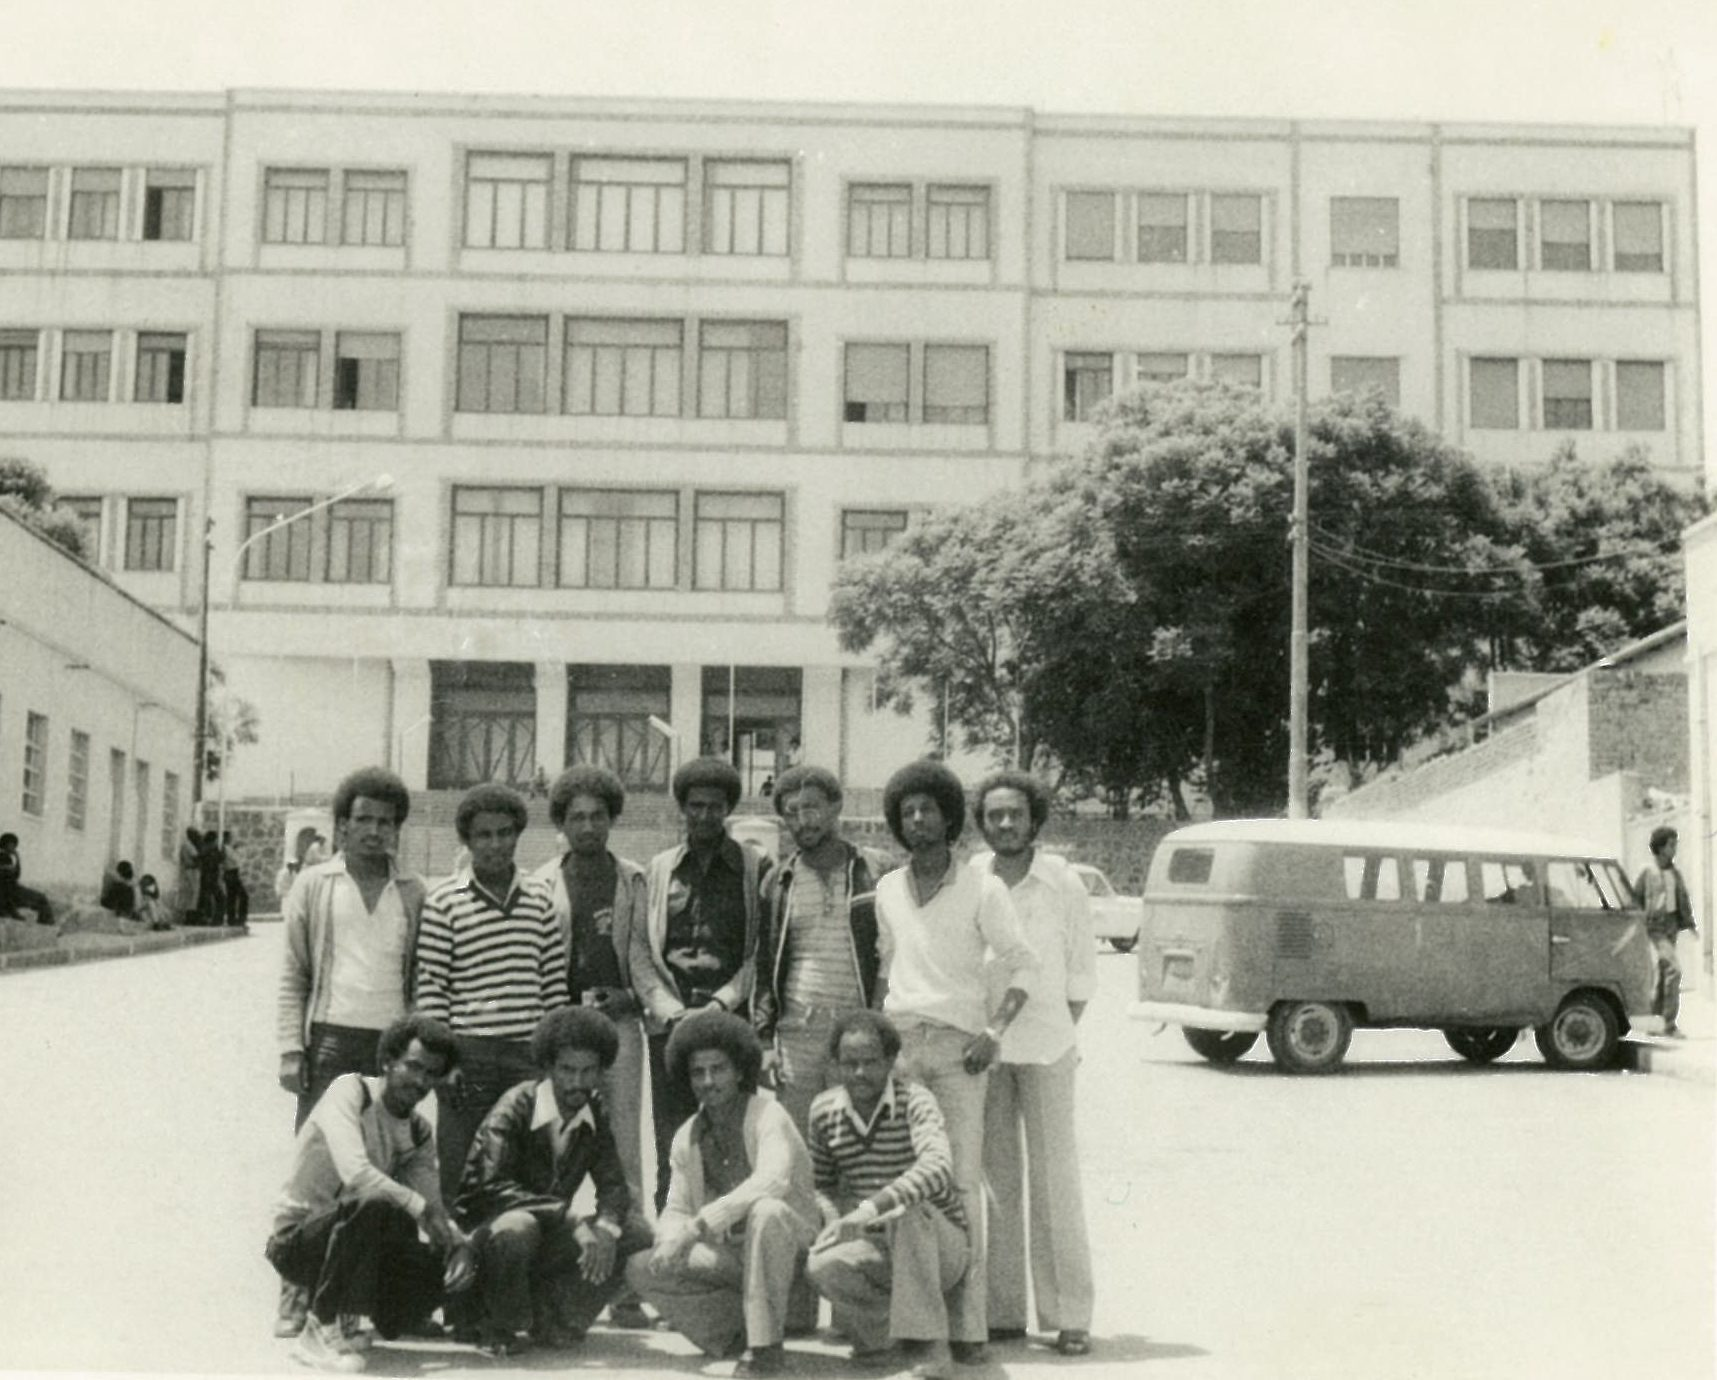 Black and white photo of group of black men posing in front of building